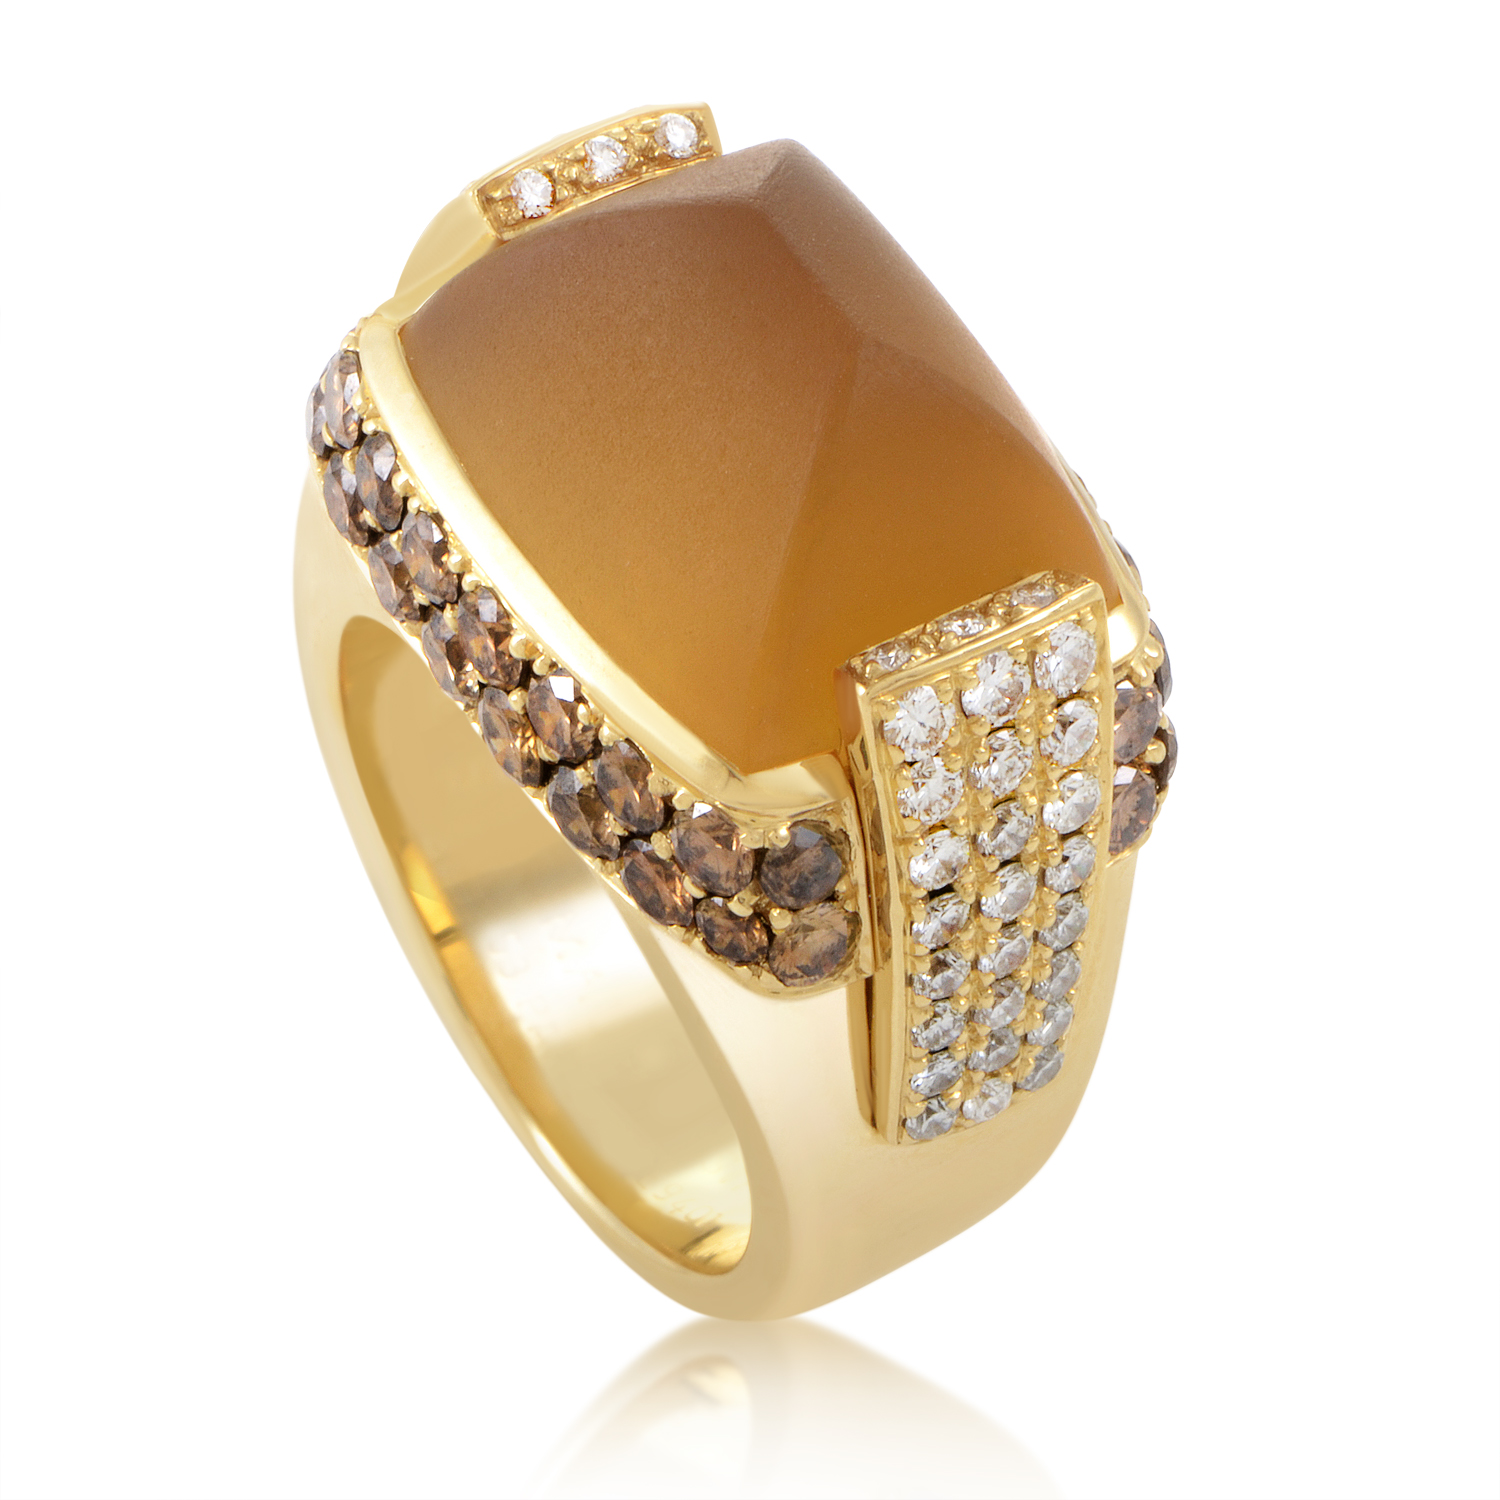 Mauboussin 18K Yellow Gold Citrine & Diamond Cocktail Ring